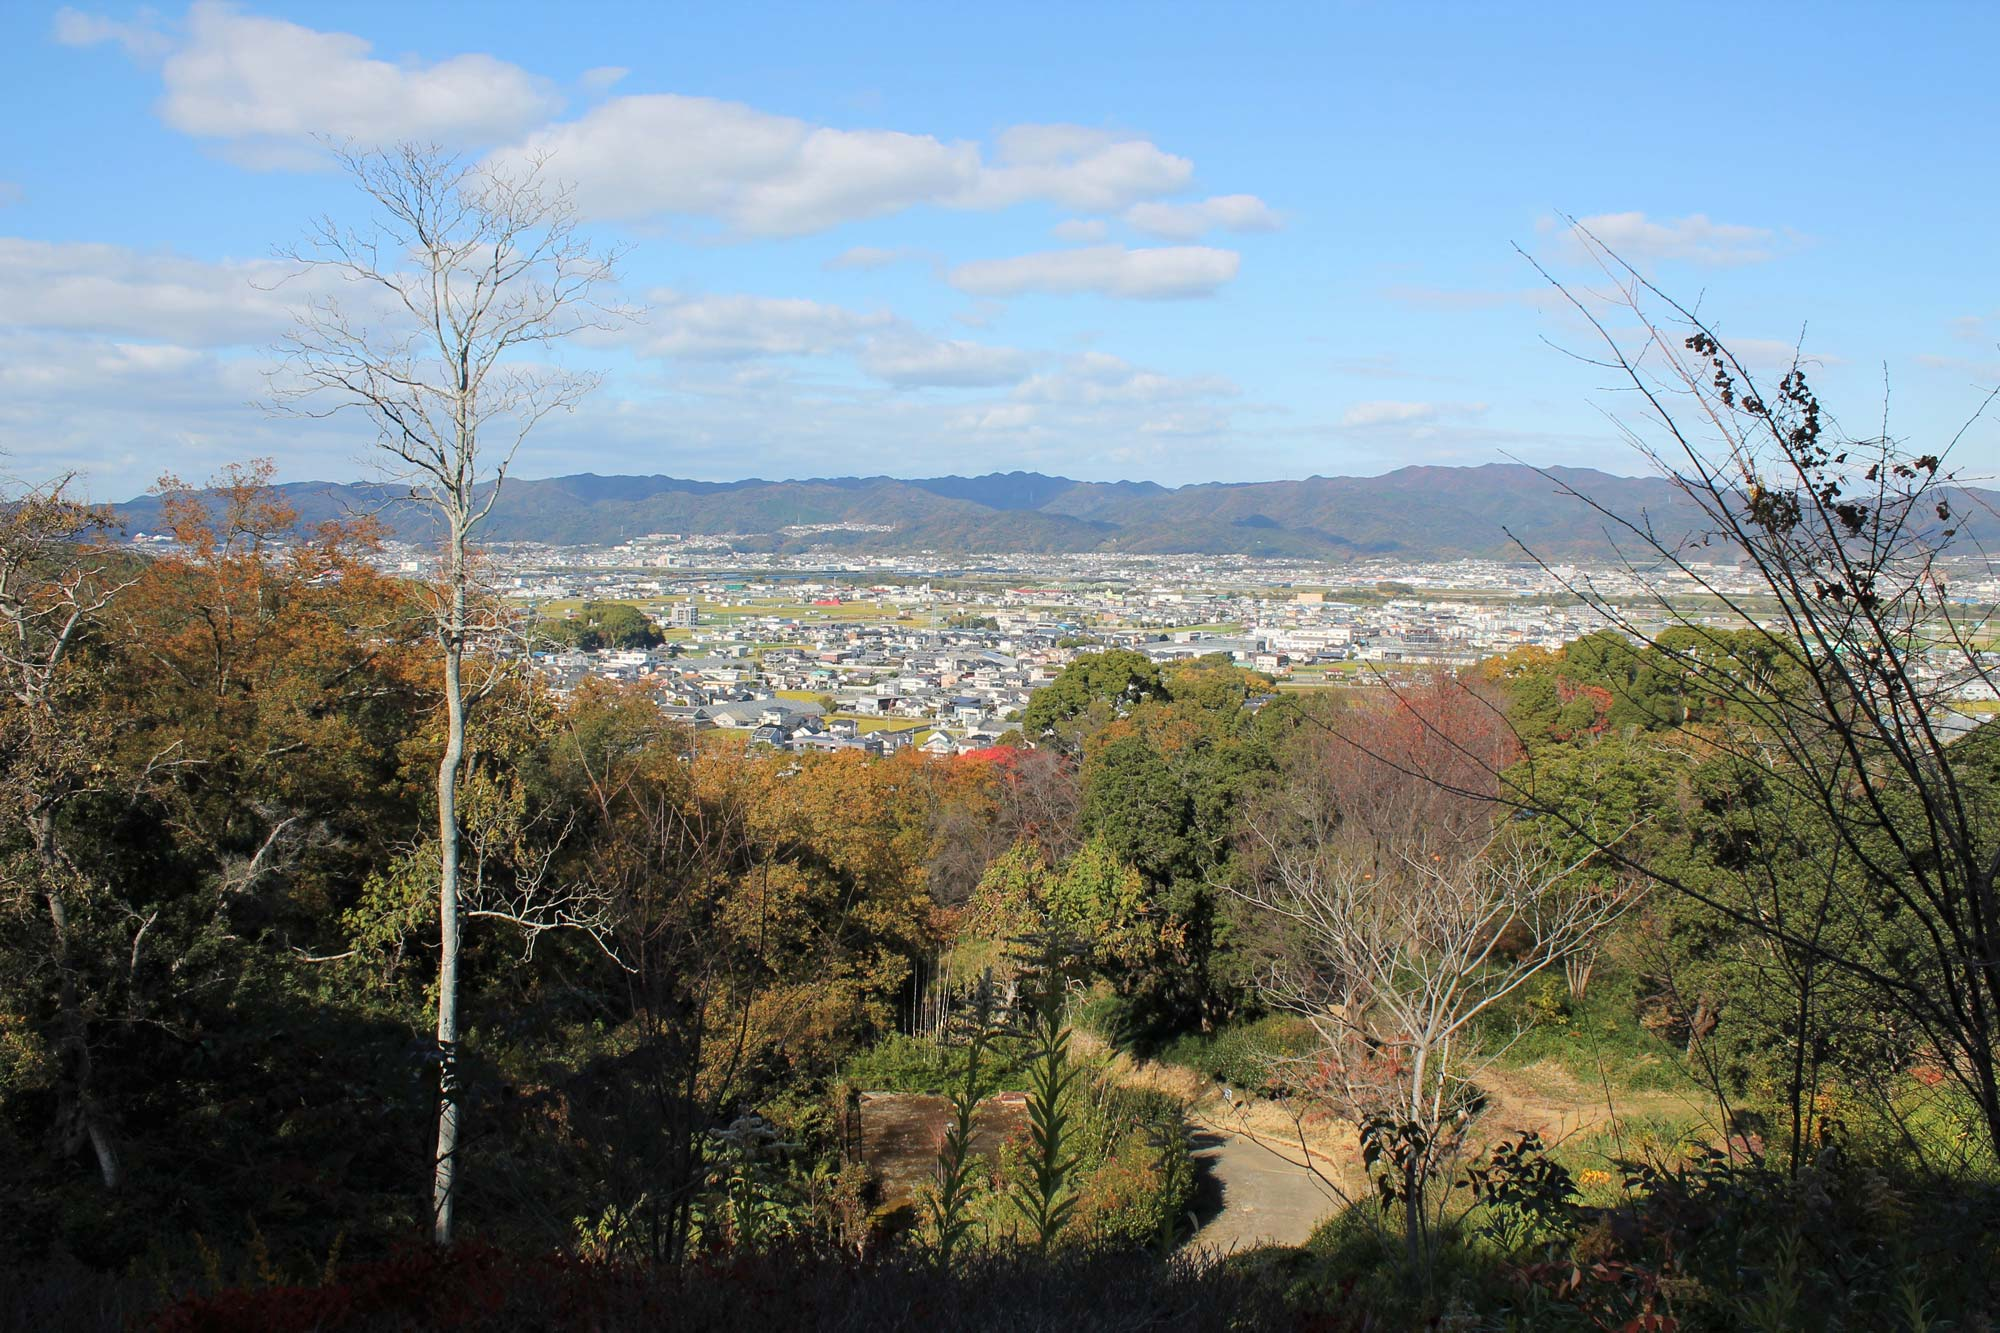 View from the mountainの写真